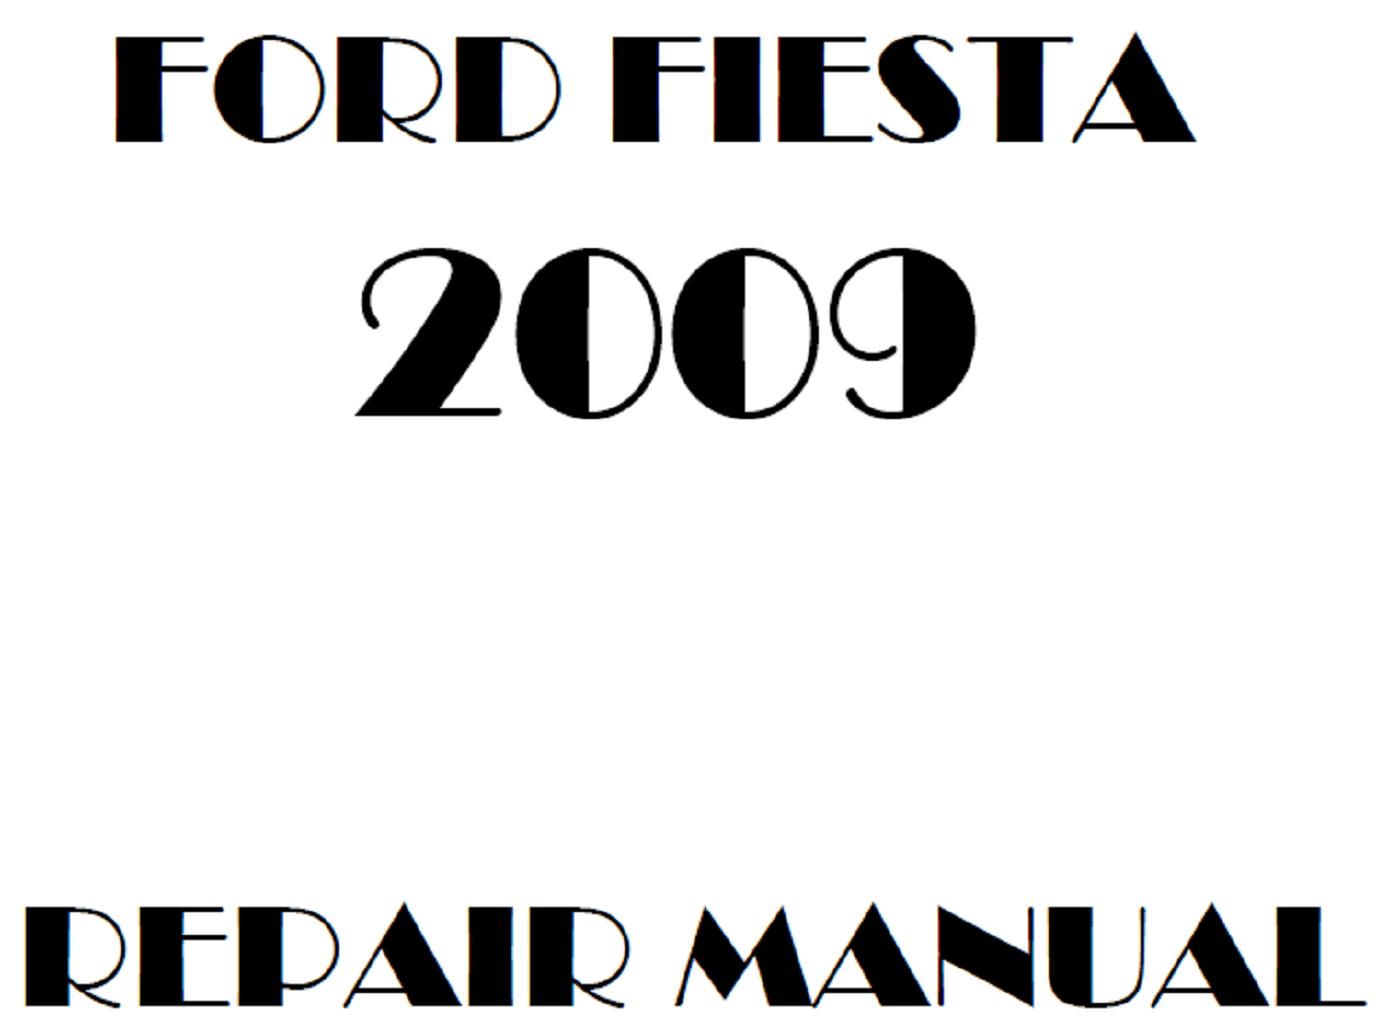 2009 Ford Fiesta repair manual